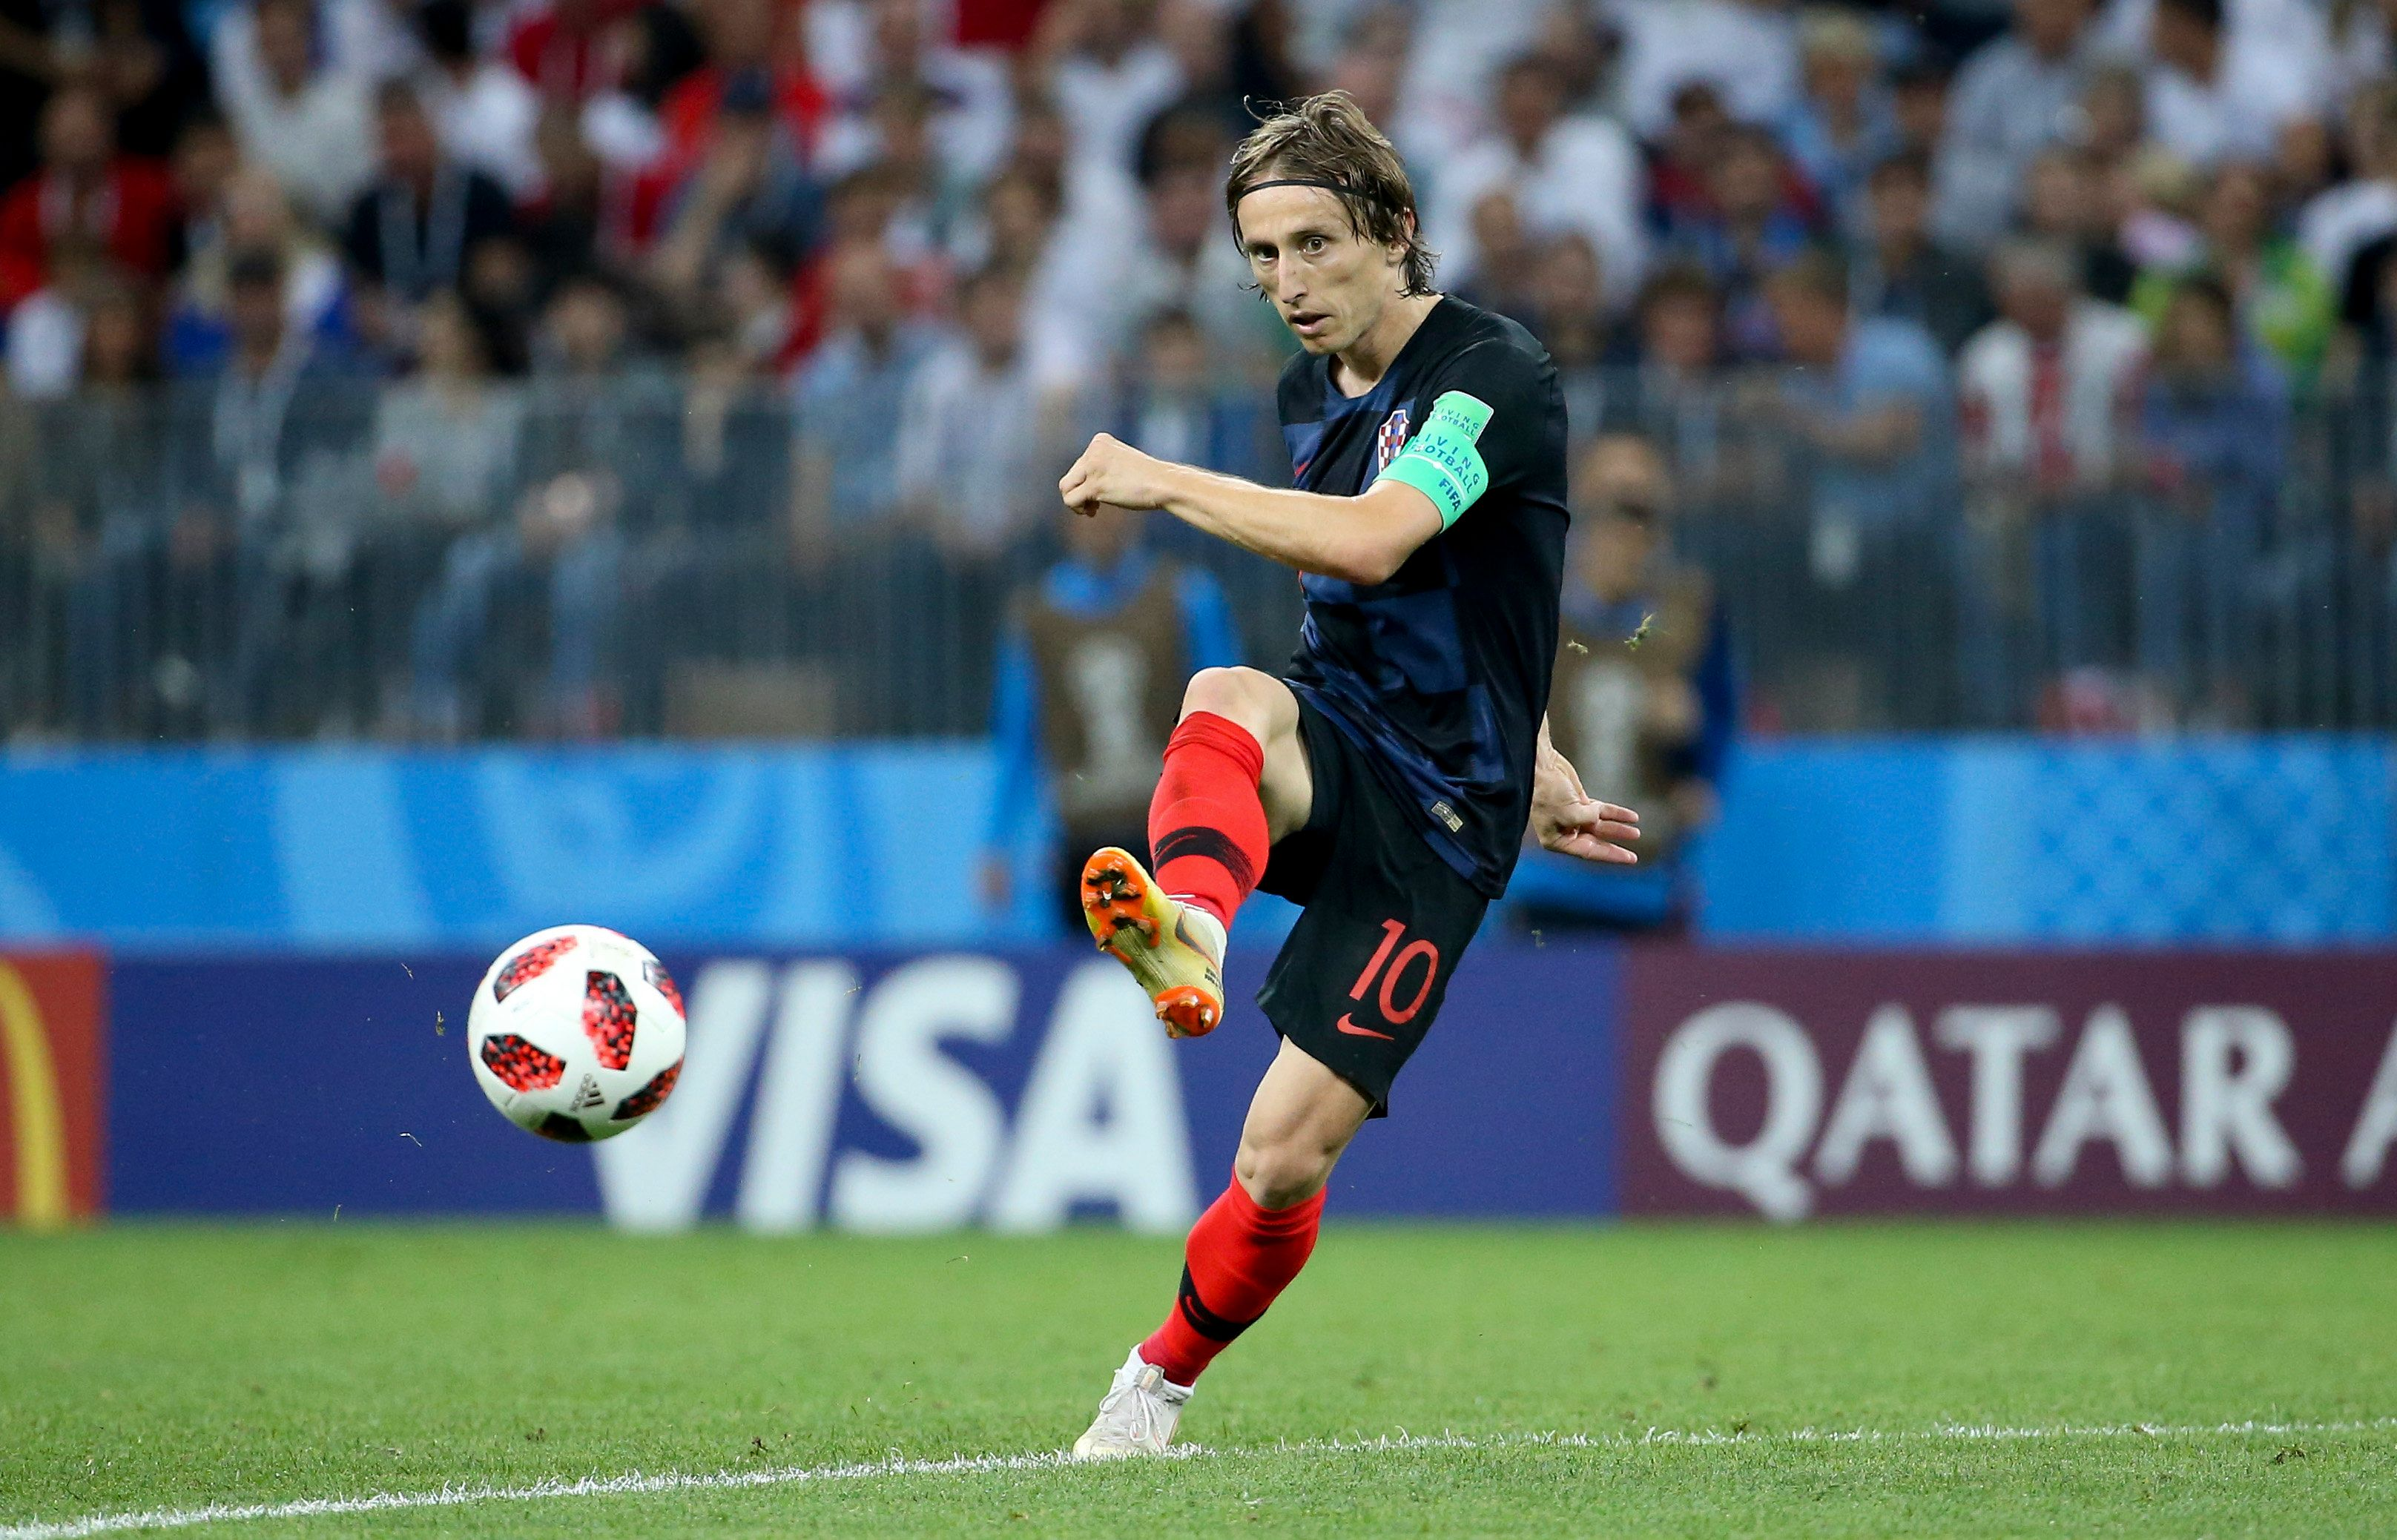 MOSCOW, RUSSIA - JULY 11: Luka Modric of Croatia during the 2018 FIFA World Cup Russia Semi Final match between England and Croatia at Luzhniki Stadium on July 11, 2018 in Moscow, Russia. (Photo by Jean Catuffe/Getty Images)